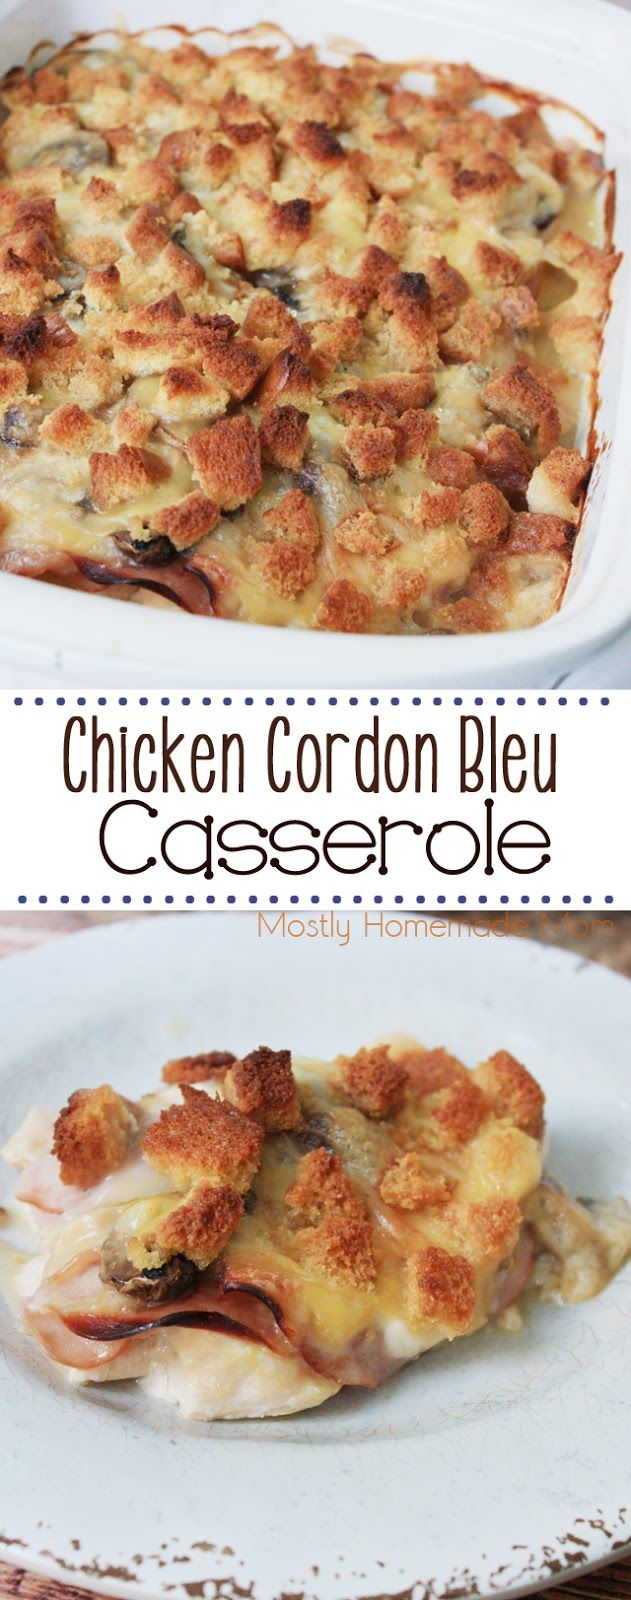 Chicken Cordon Bleu Casserole - the perfect chilly weeknight meal! Fresh chicken, ham, and swiss cheese with a creamy sauce and topped with buttered bread cubes - delicious!